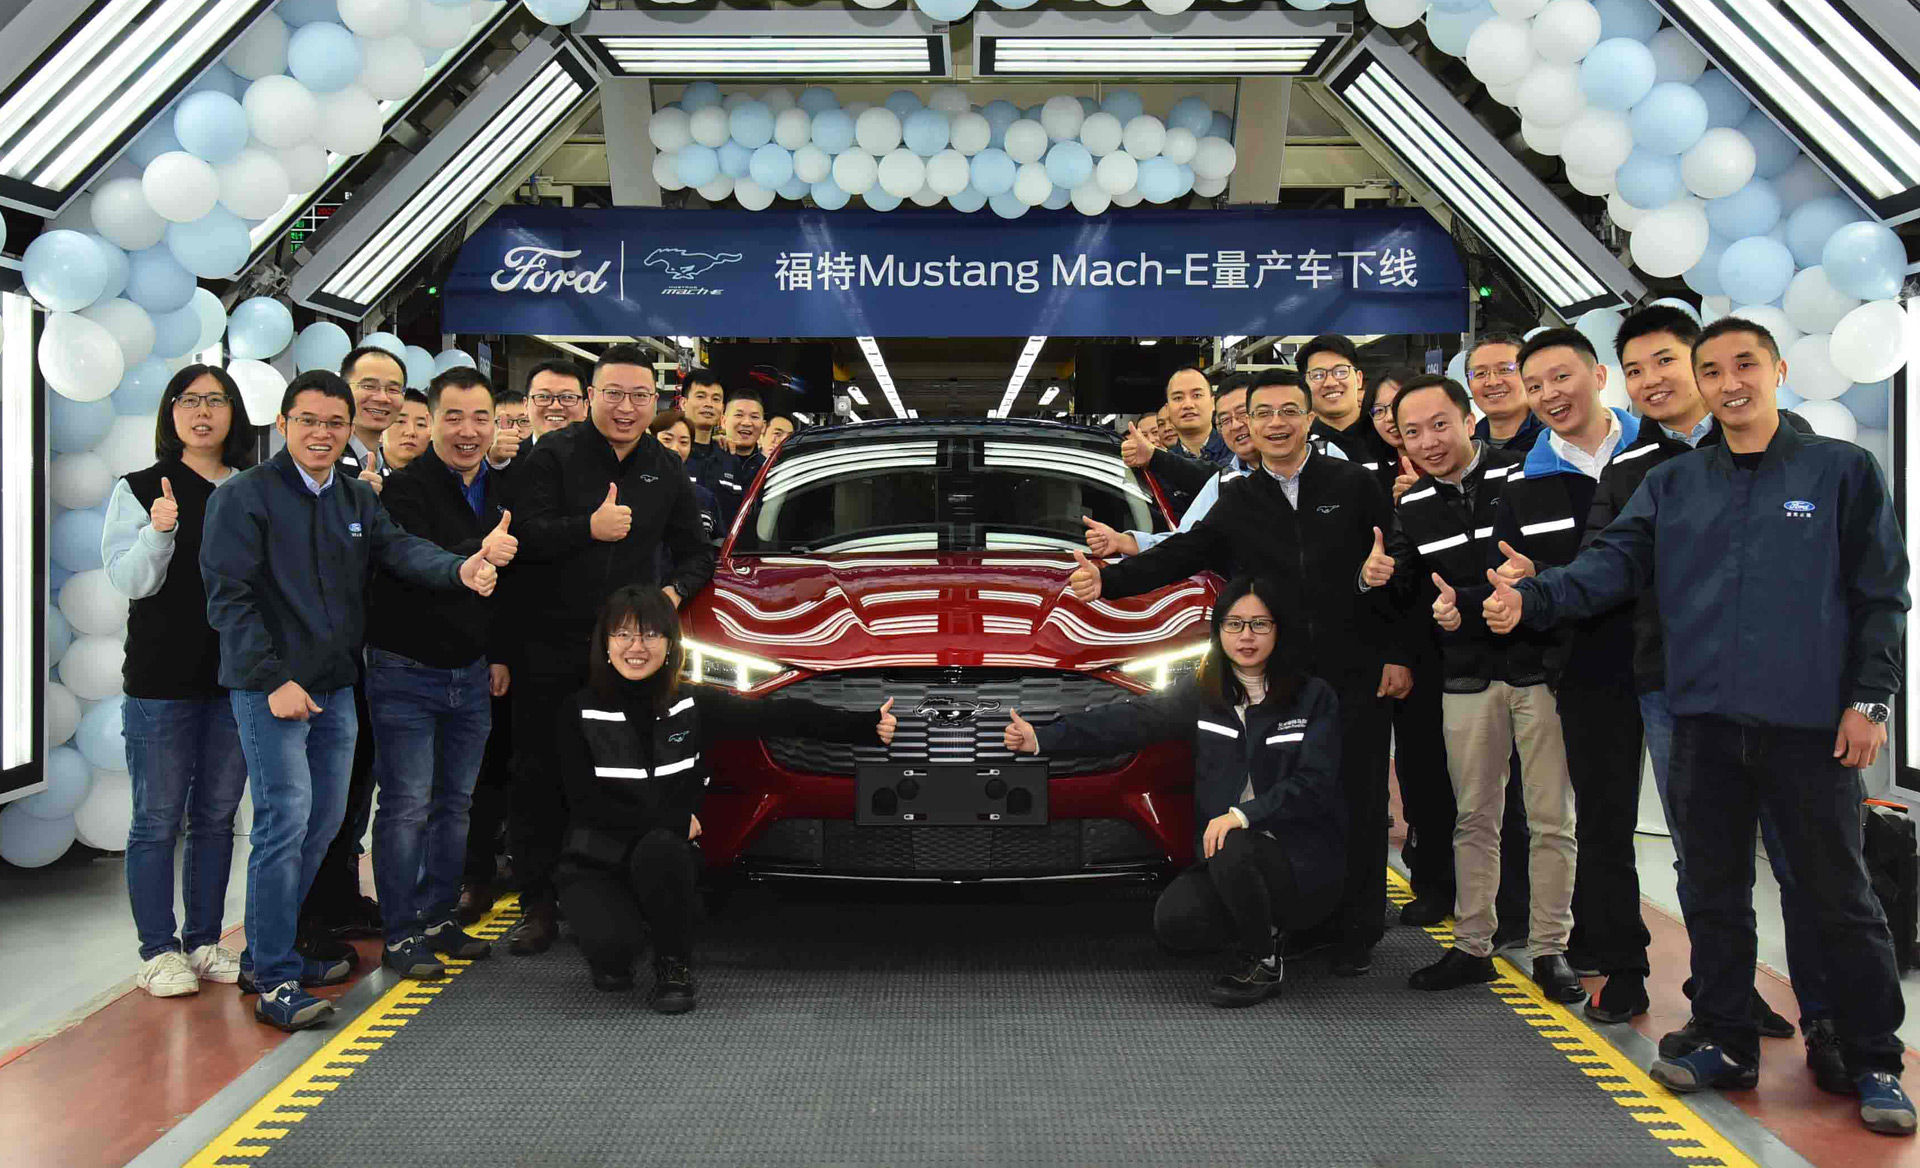 The Mustang is now made in China